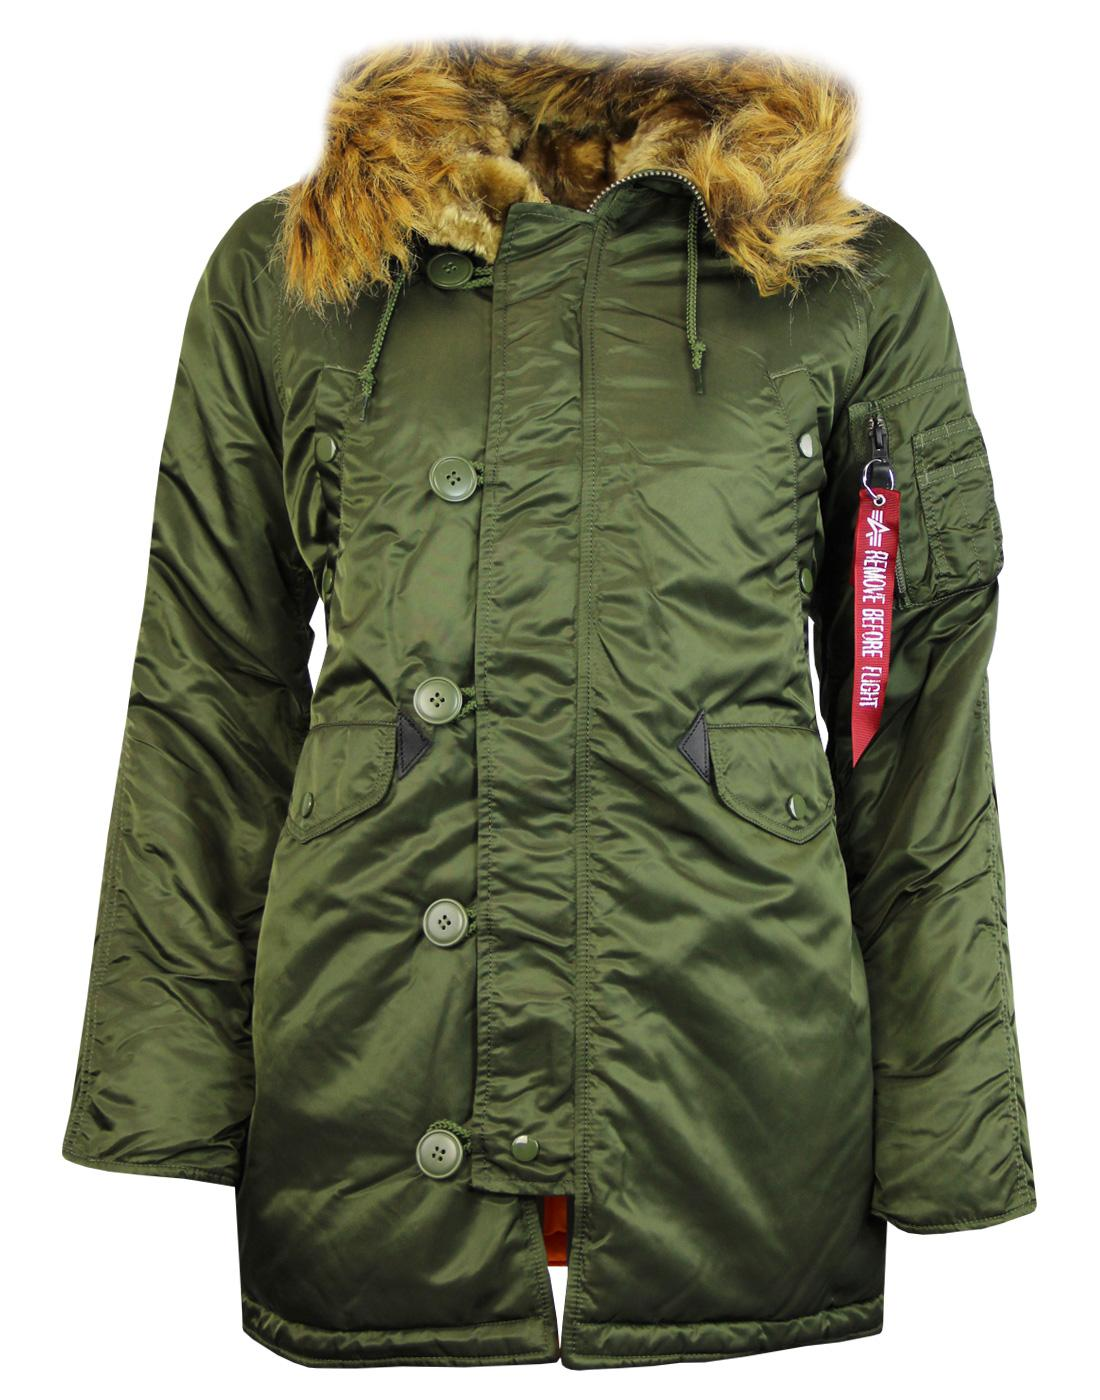 N3B VF ALPHA INDUSTRIES Womens Mod Snorkel Parka G